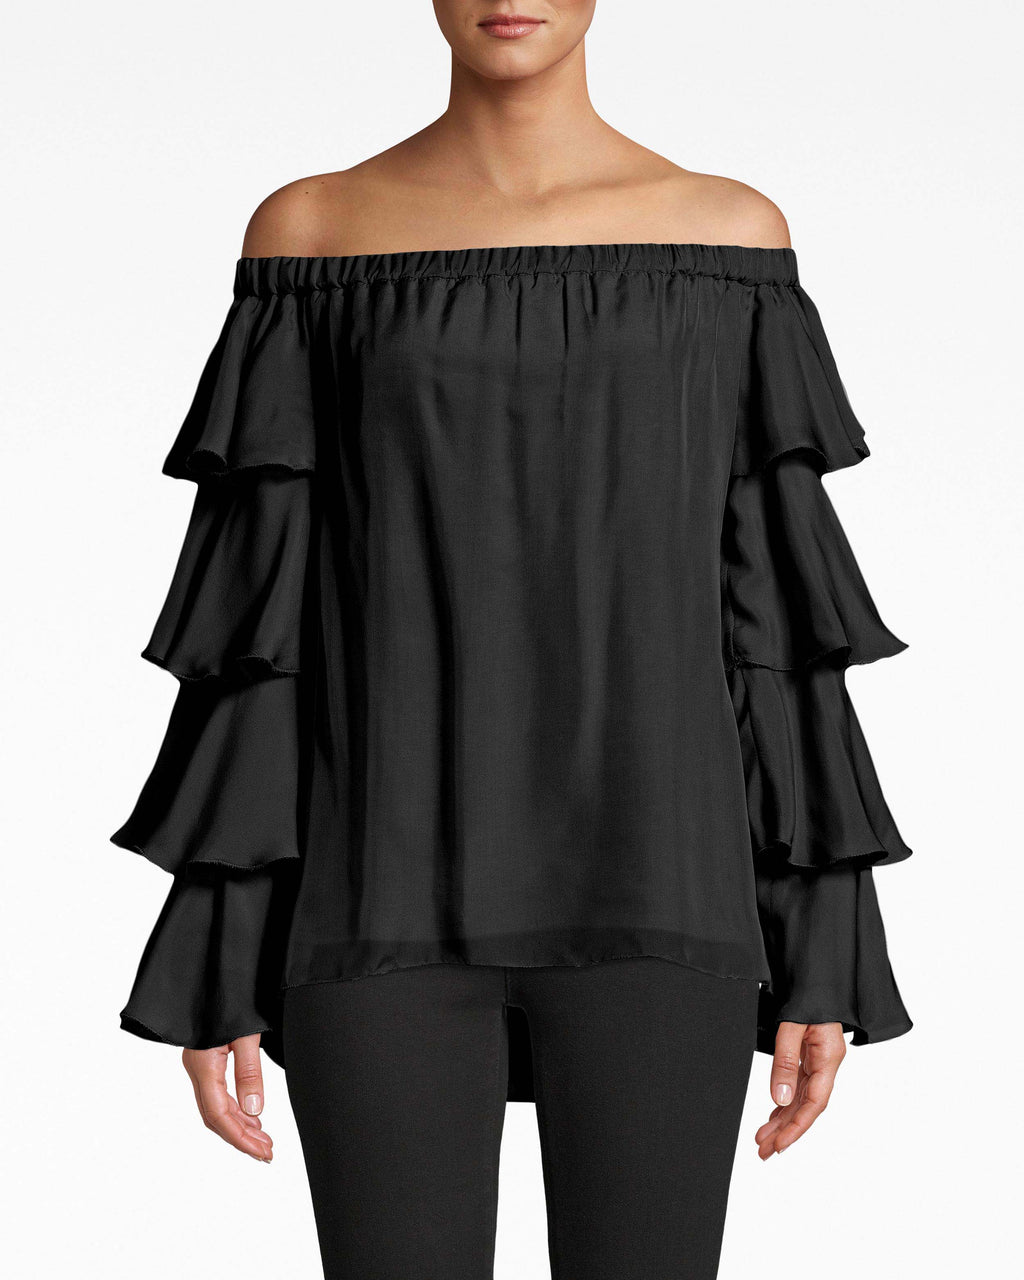 BH20026 - OFF THE SHOULDER RUFFLE BLOUSE - tops - blouses - Tiers of ruffles cascade down the sleeves of this off the shoulder blouse. The airy feel is complemented with the loose hem. Pair with dark denim. Shift underneath.